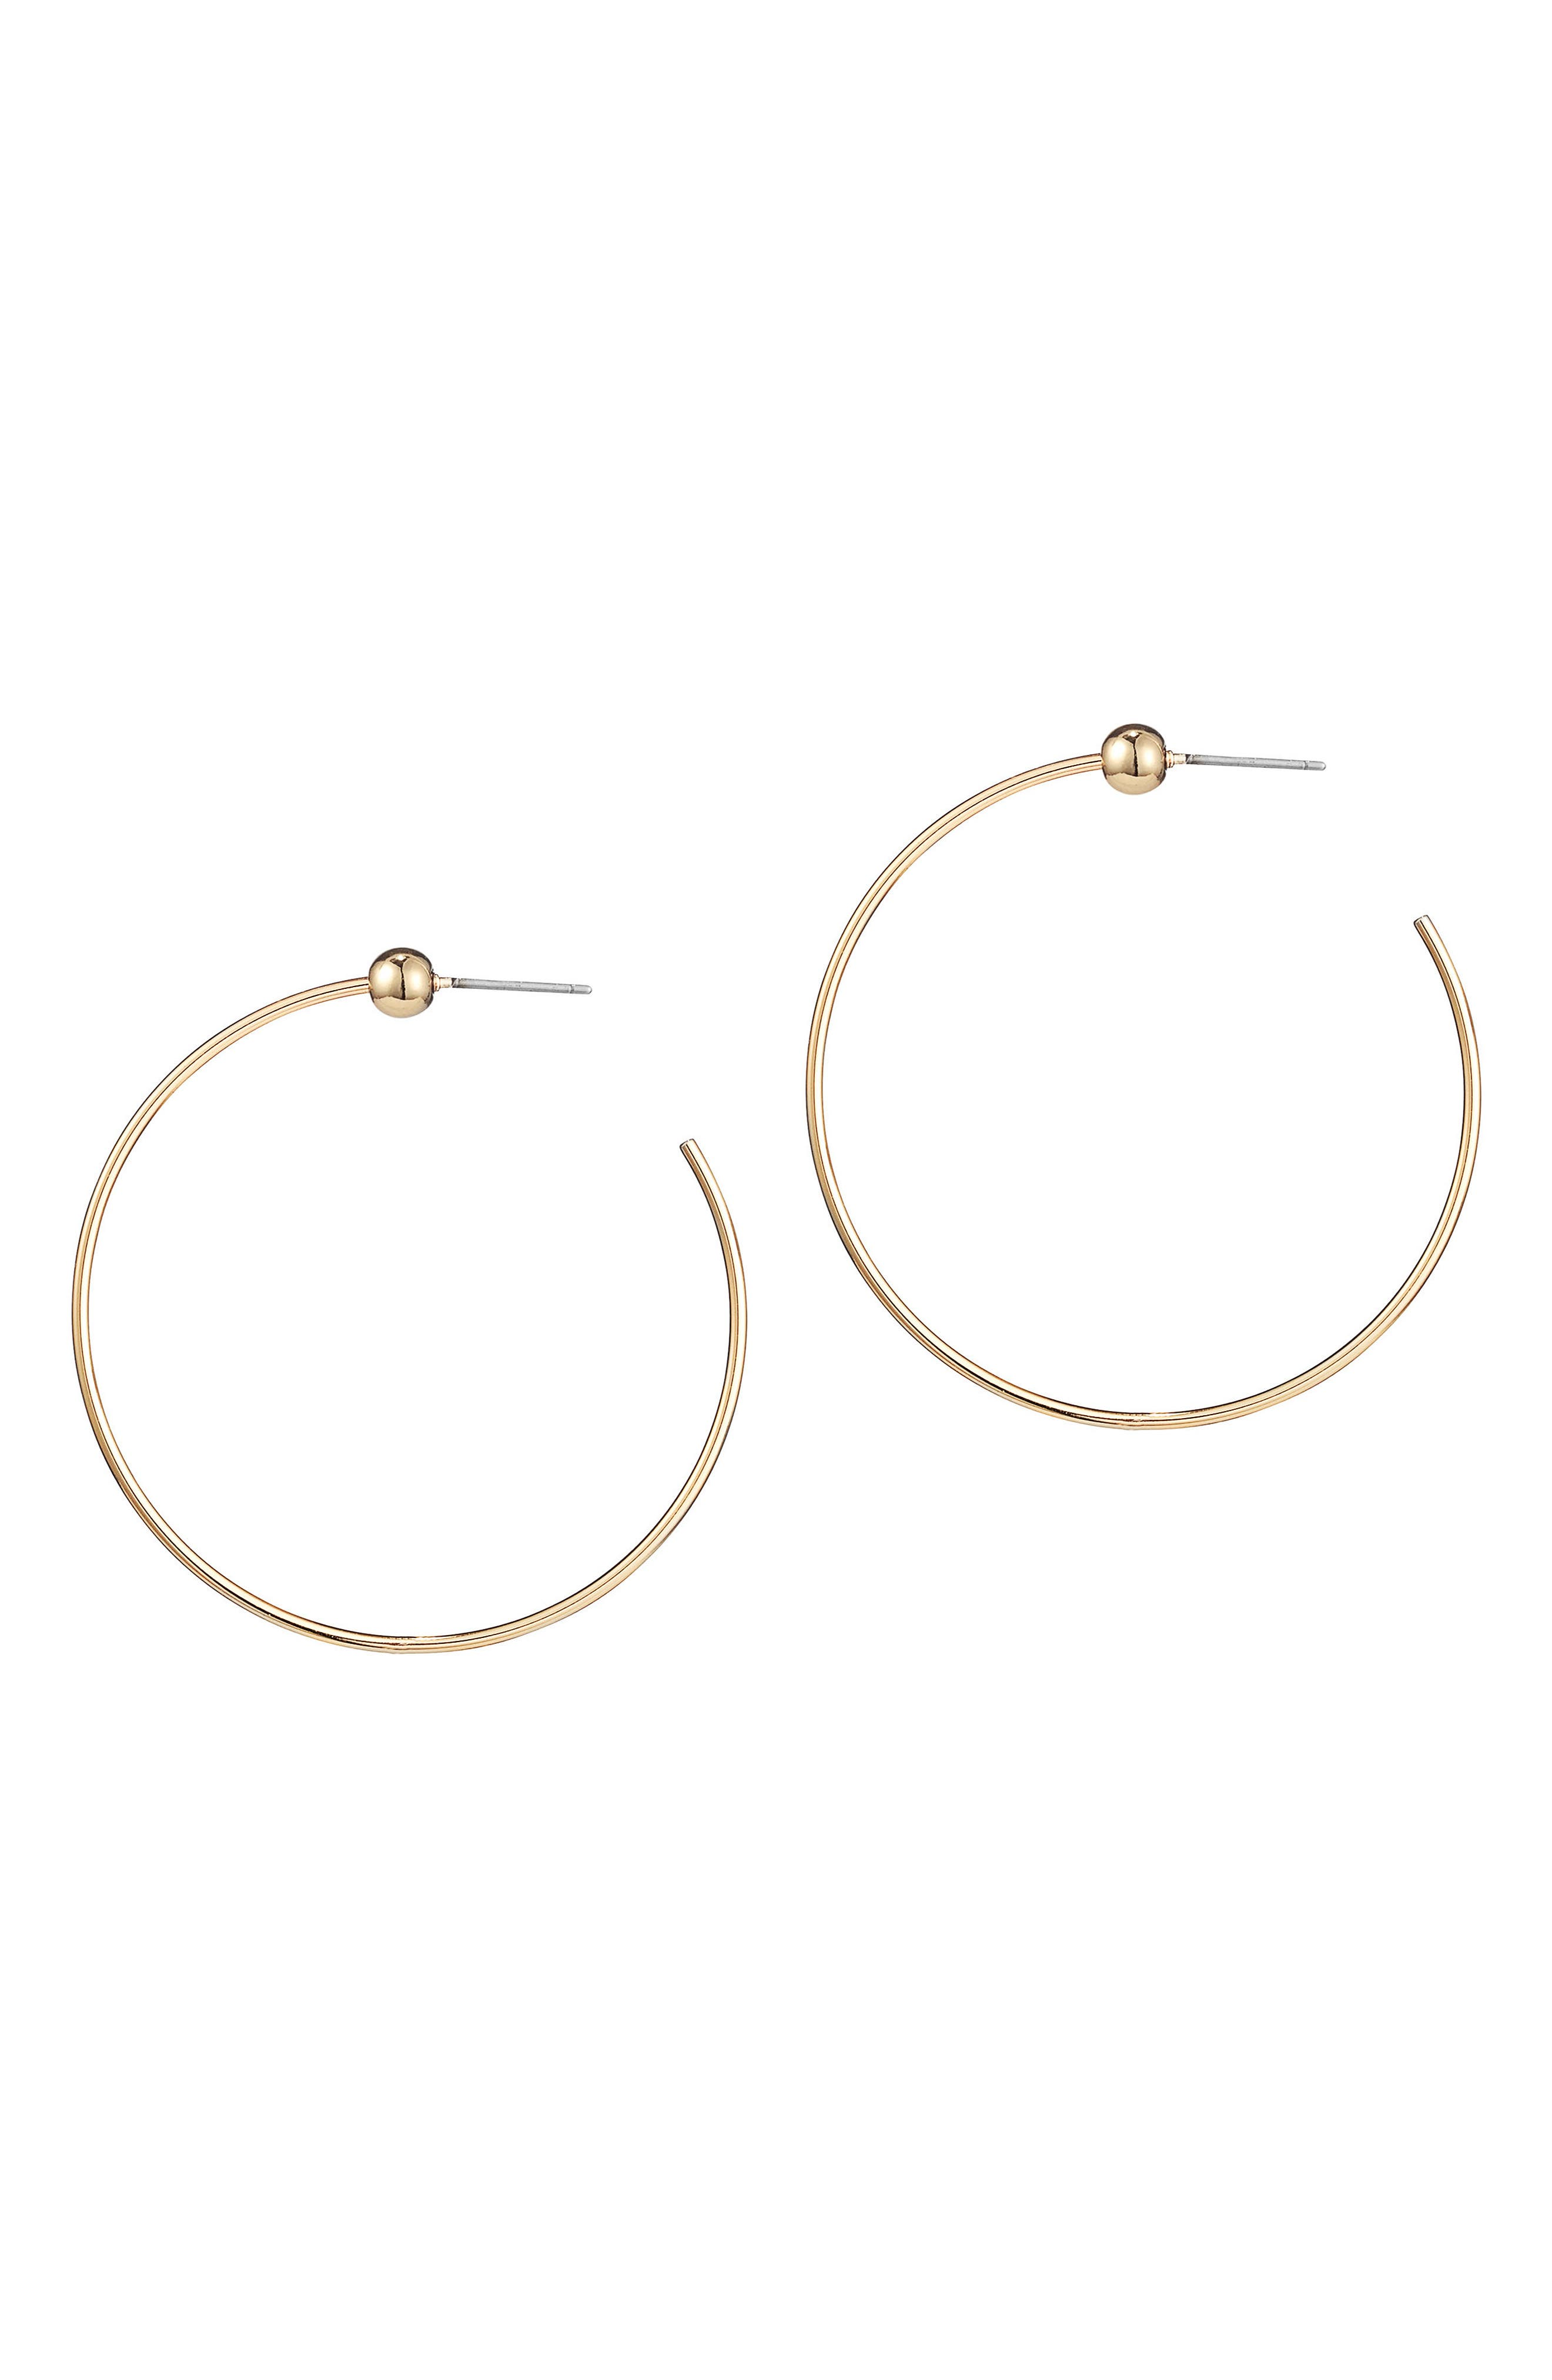 Icon Small Hoop Earrings,                             Main thumbnail 1, color,                             GOLD